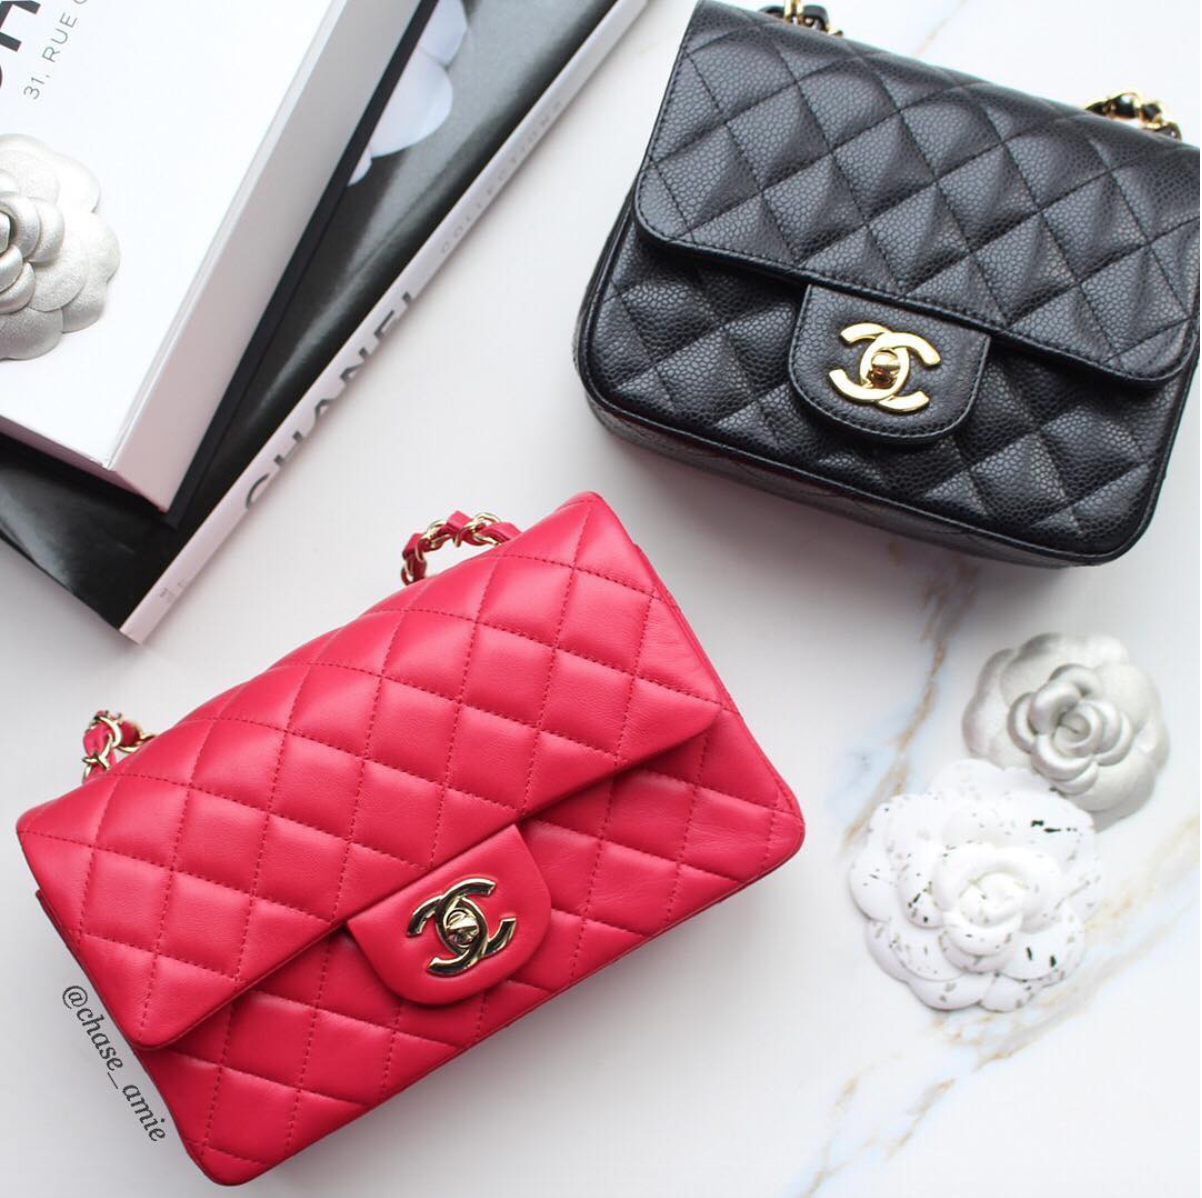 c52cc403fa64 How To Buy a Chanel Mini - Chase Amie